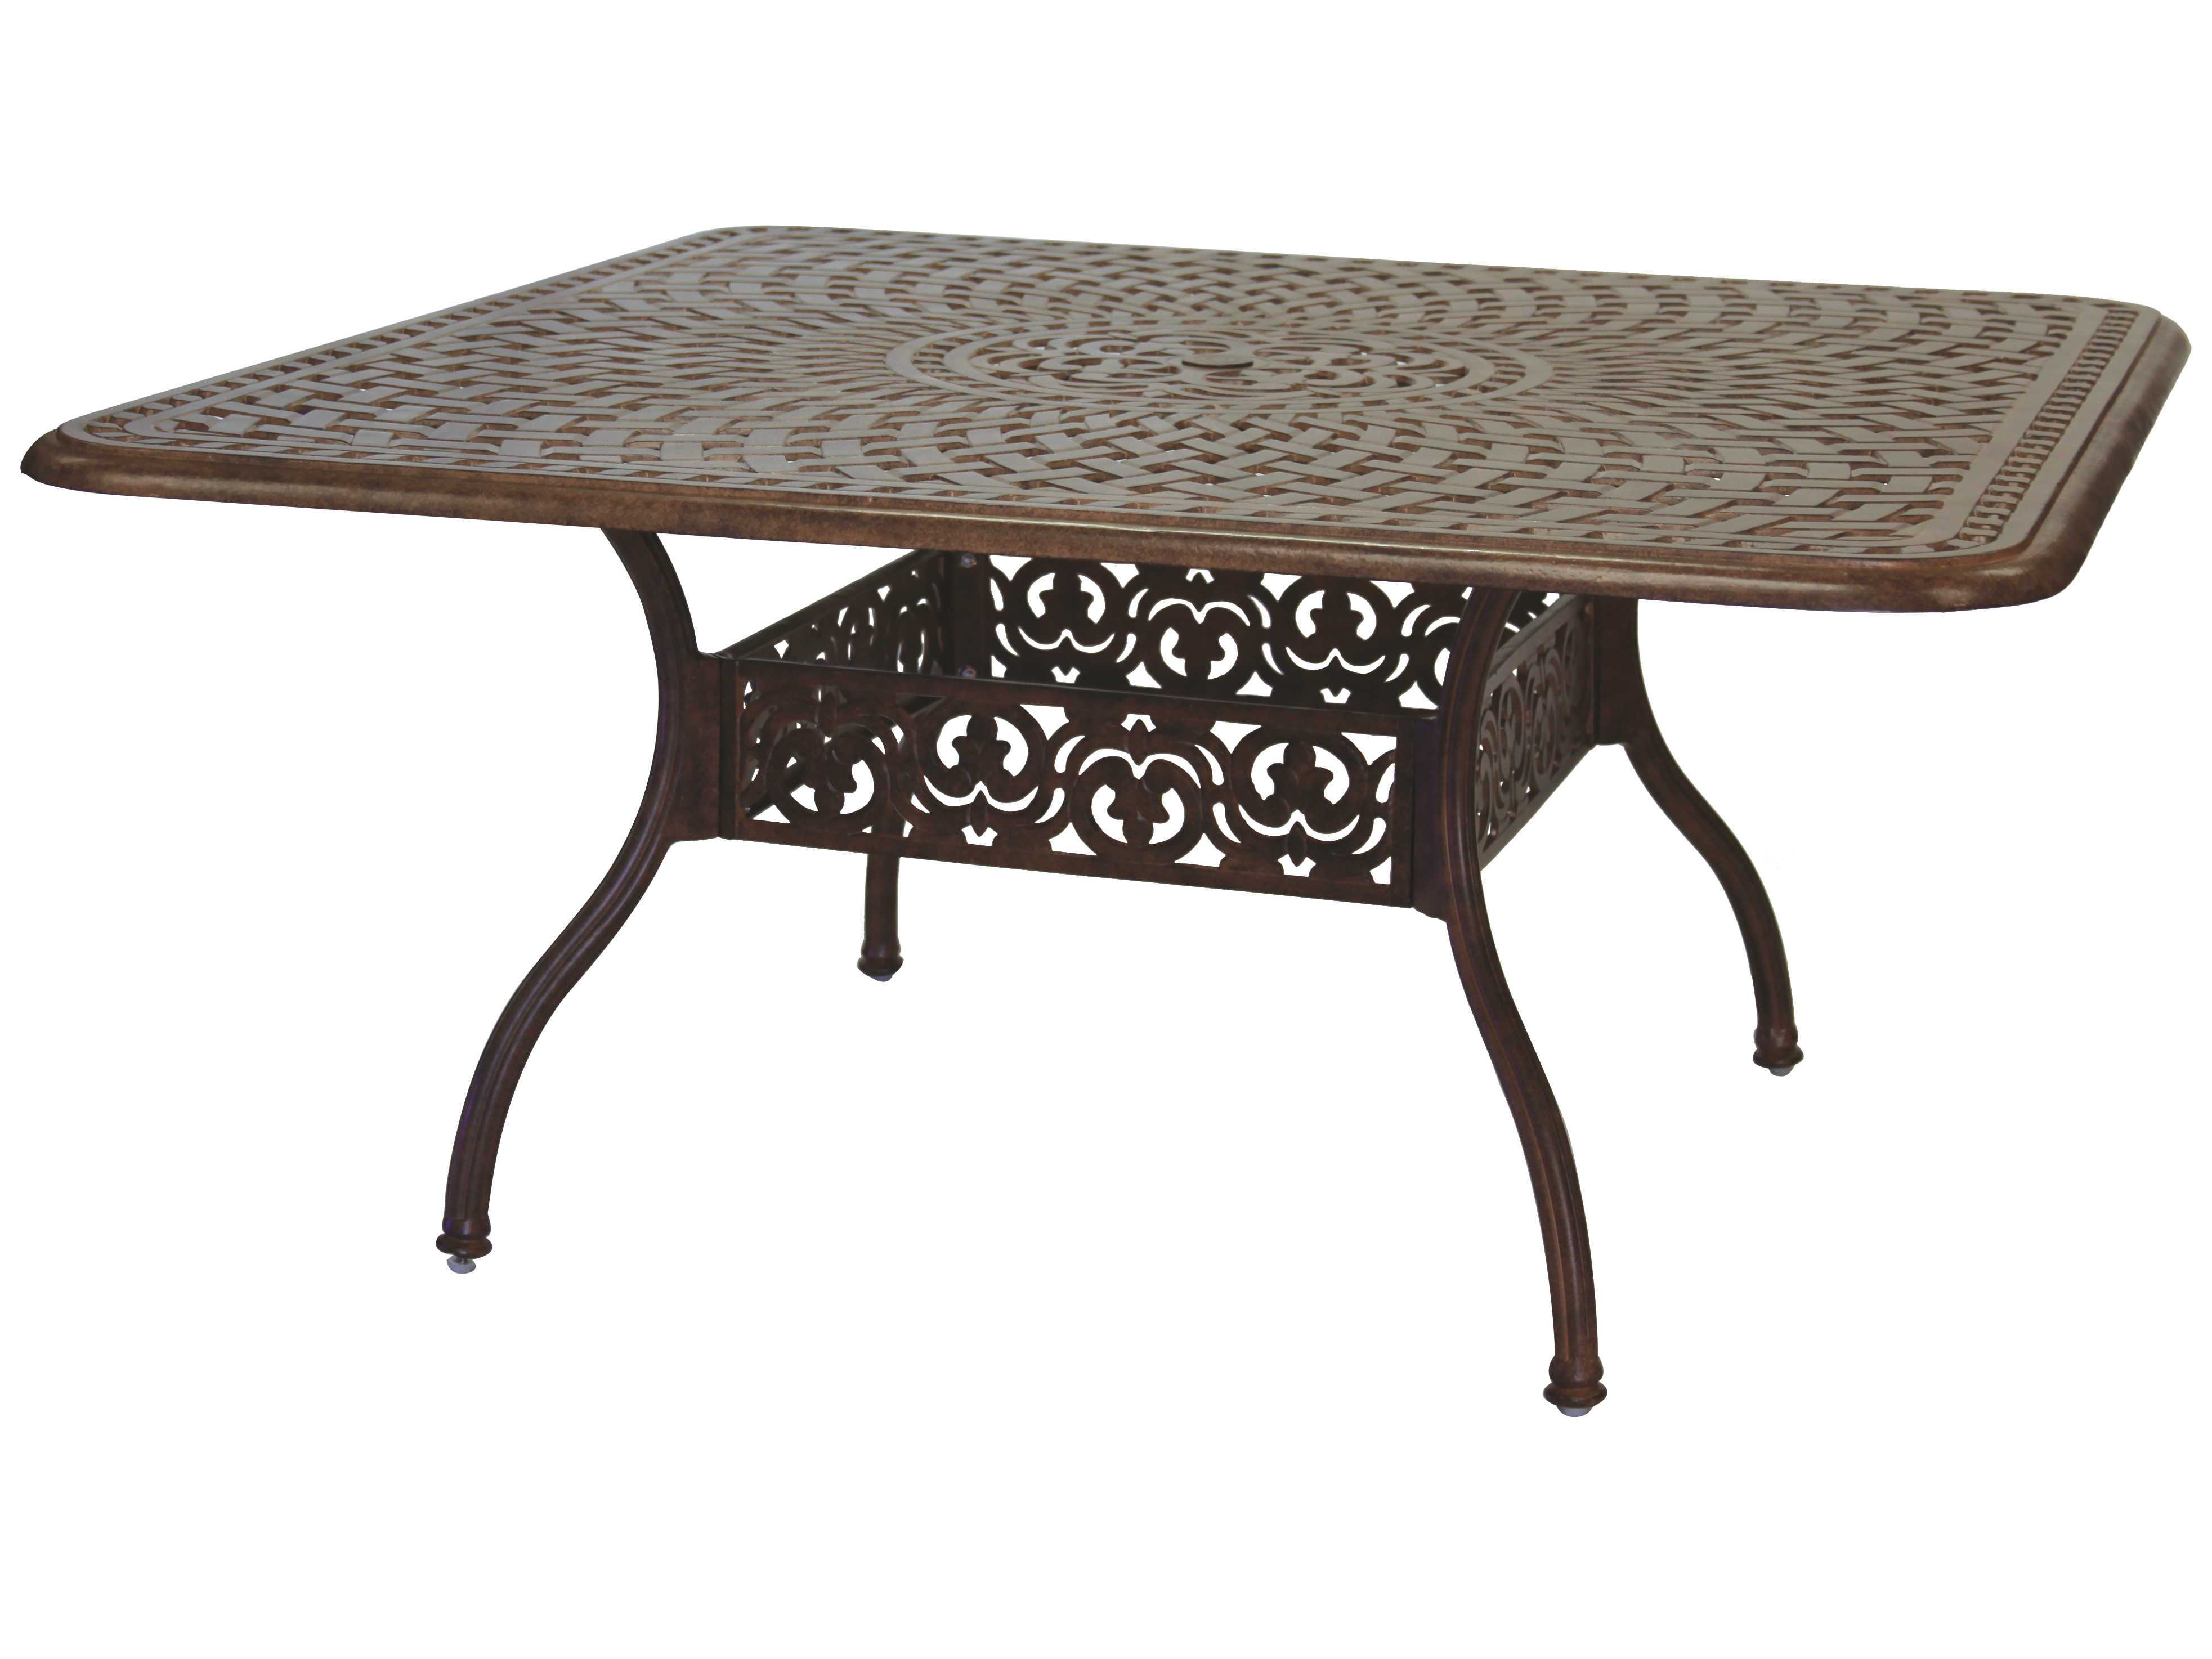 Awesome Darlee Outdoor Living Series 60 Cast Aluminum 60 Square Dining Table Home Interior And Landscaping Mentranervesignezvosmurscom